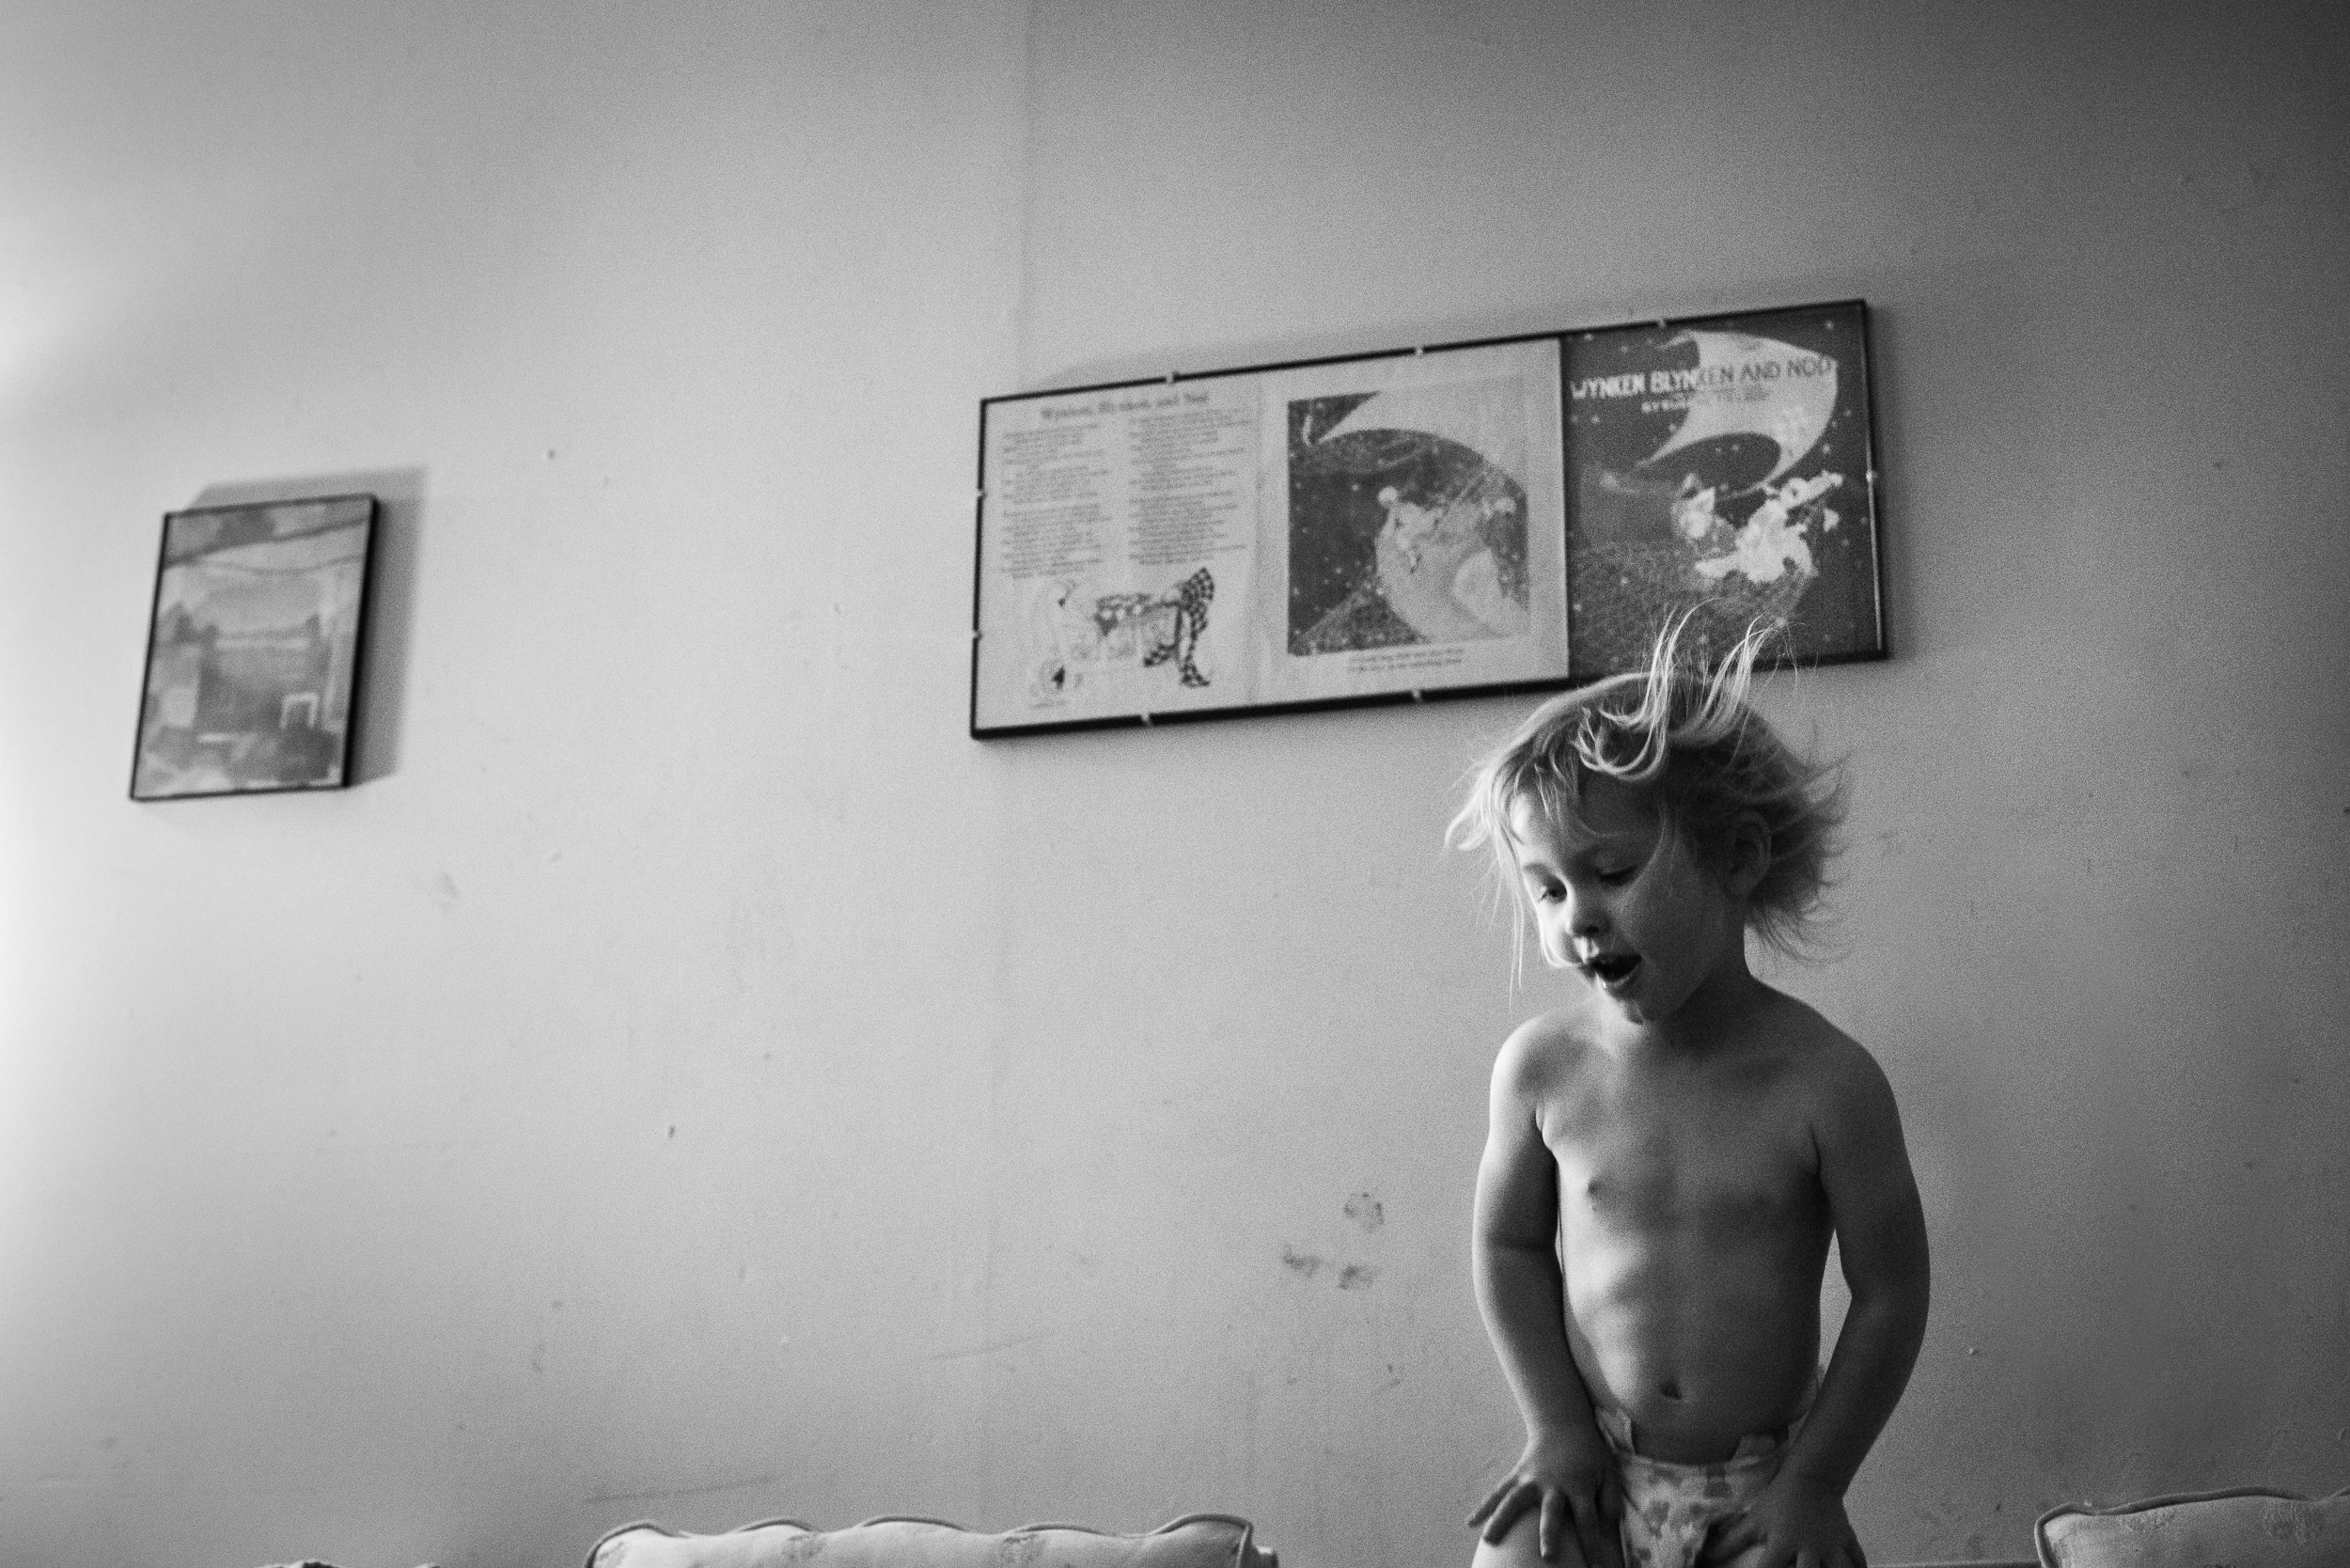 "Blog - The Pen & Camera - Inspirational, Poetry, Spirituality, Writing, Denver, Colorado -  Molly Rees Photo - Black and White Documentary Childhood Photography - girl jumping on couch by M. Menschel ""On Children,"" poem by Khalil Gibran"